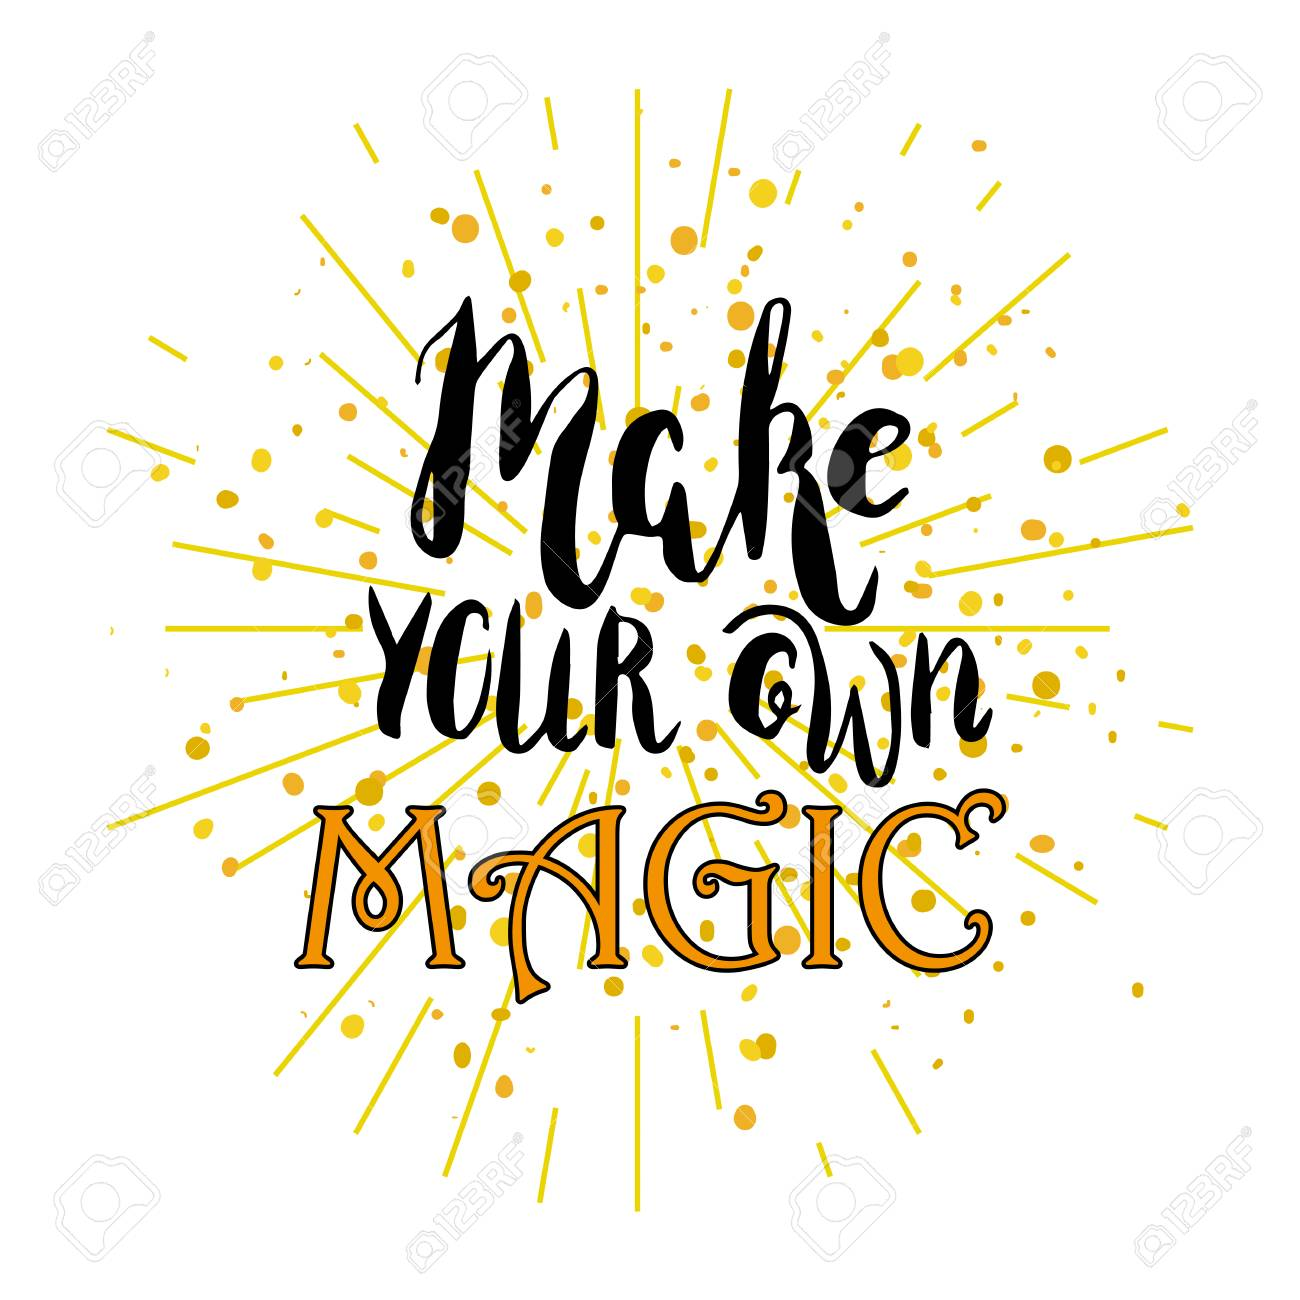 Make your own magic..